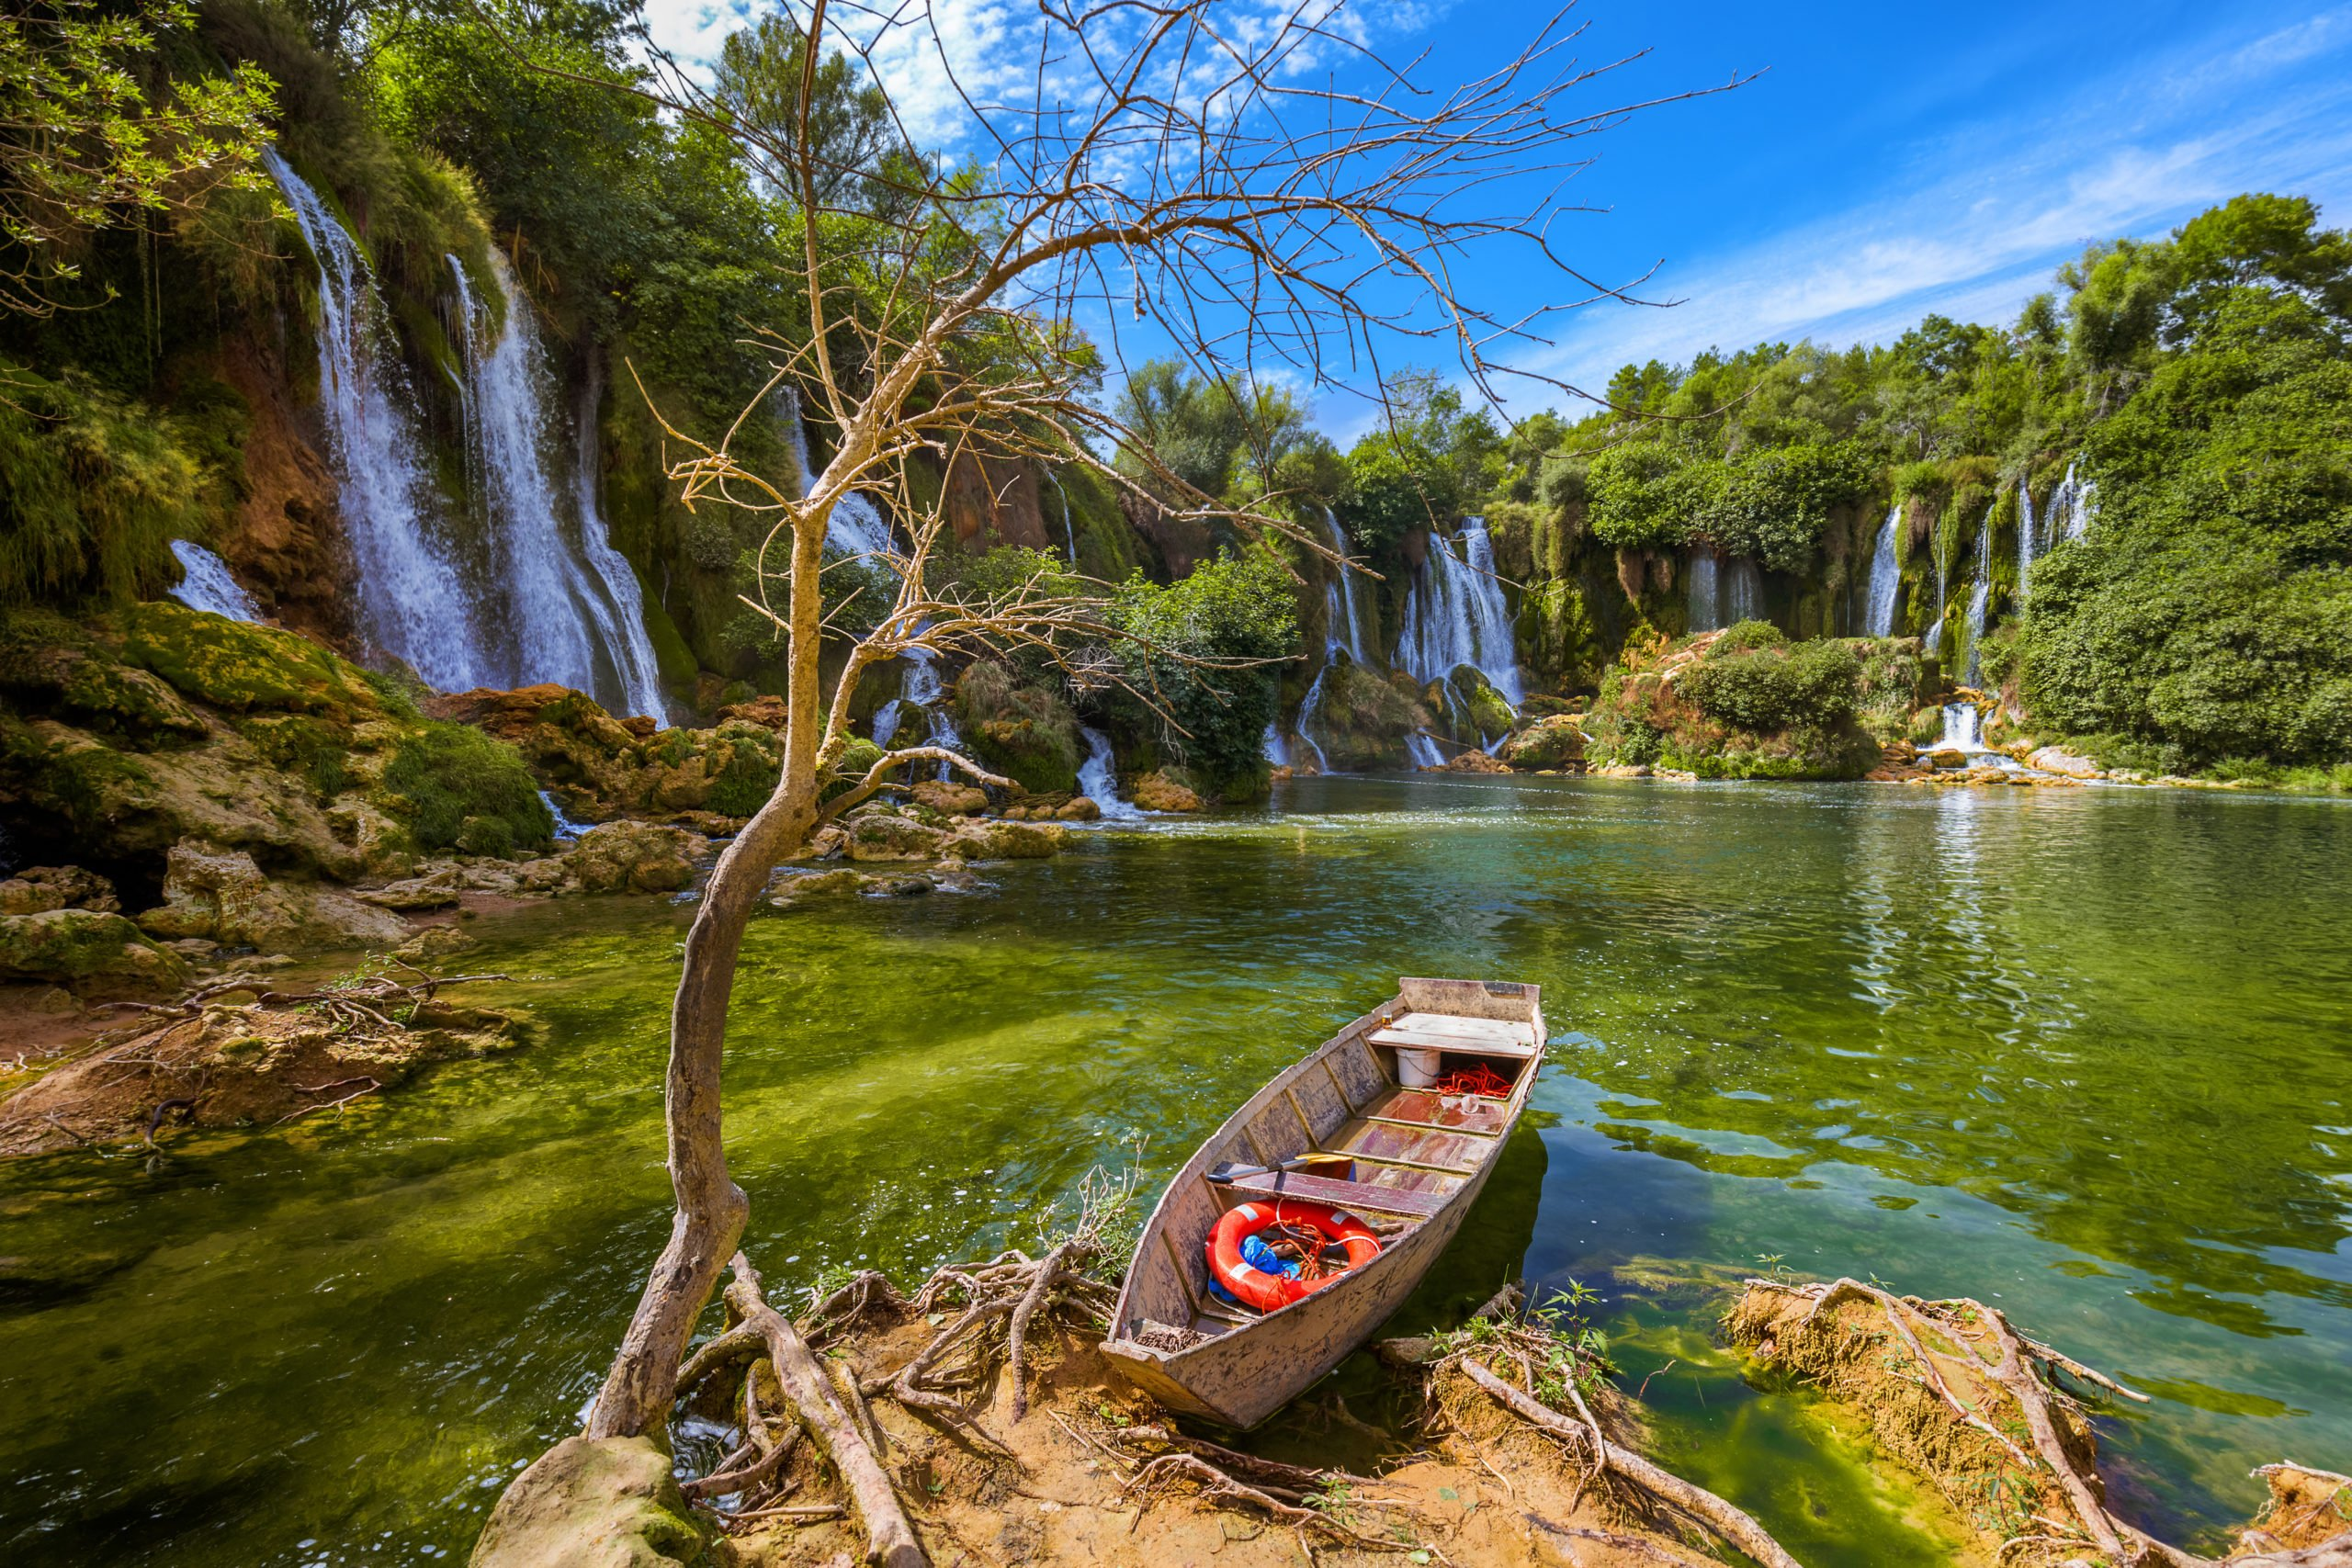 Relax At The Kravice Waterfalls On The Mostar And Kravice Tour From Dubrovnik